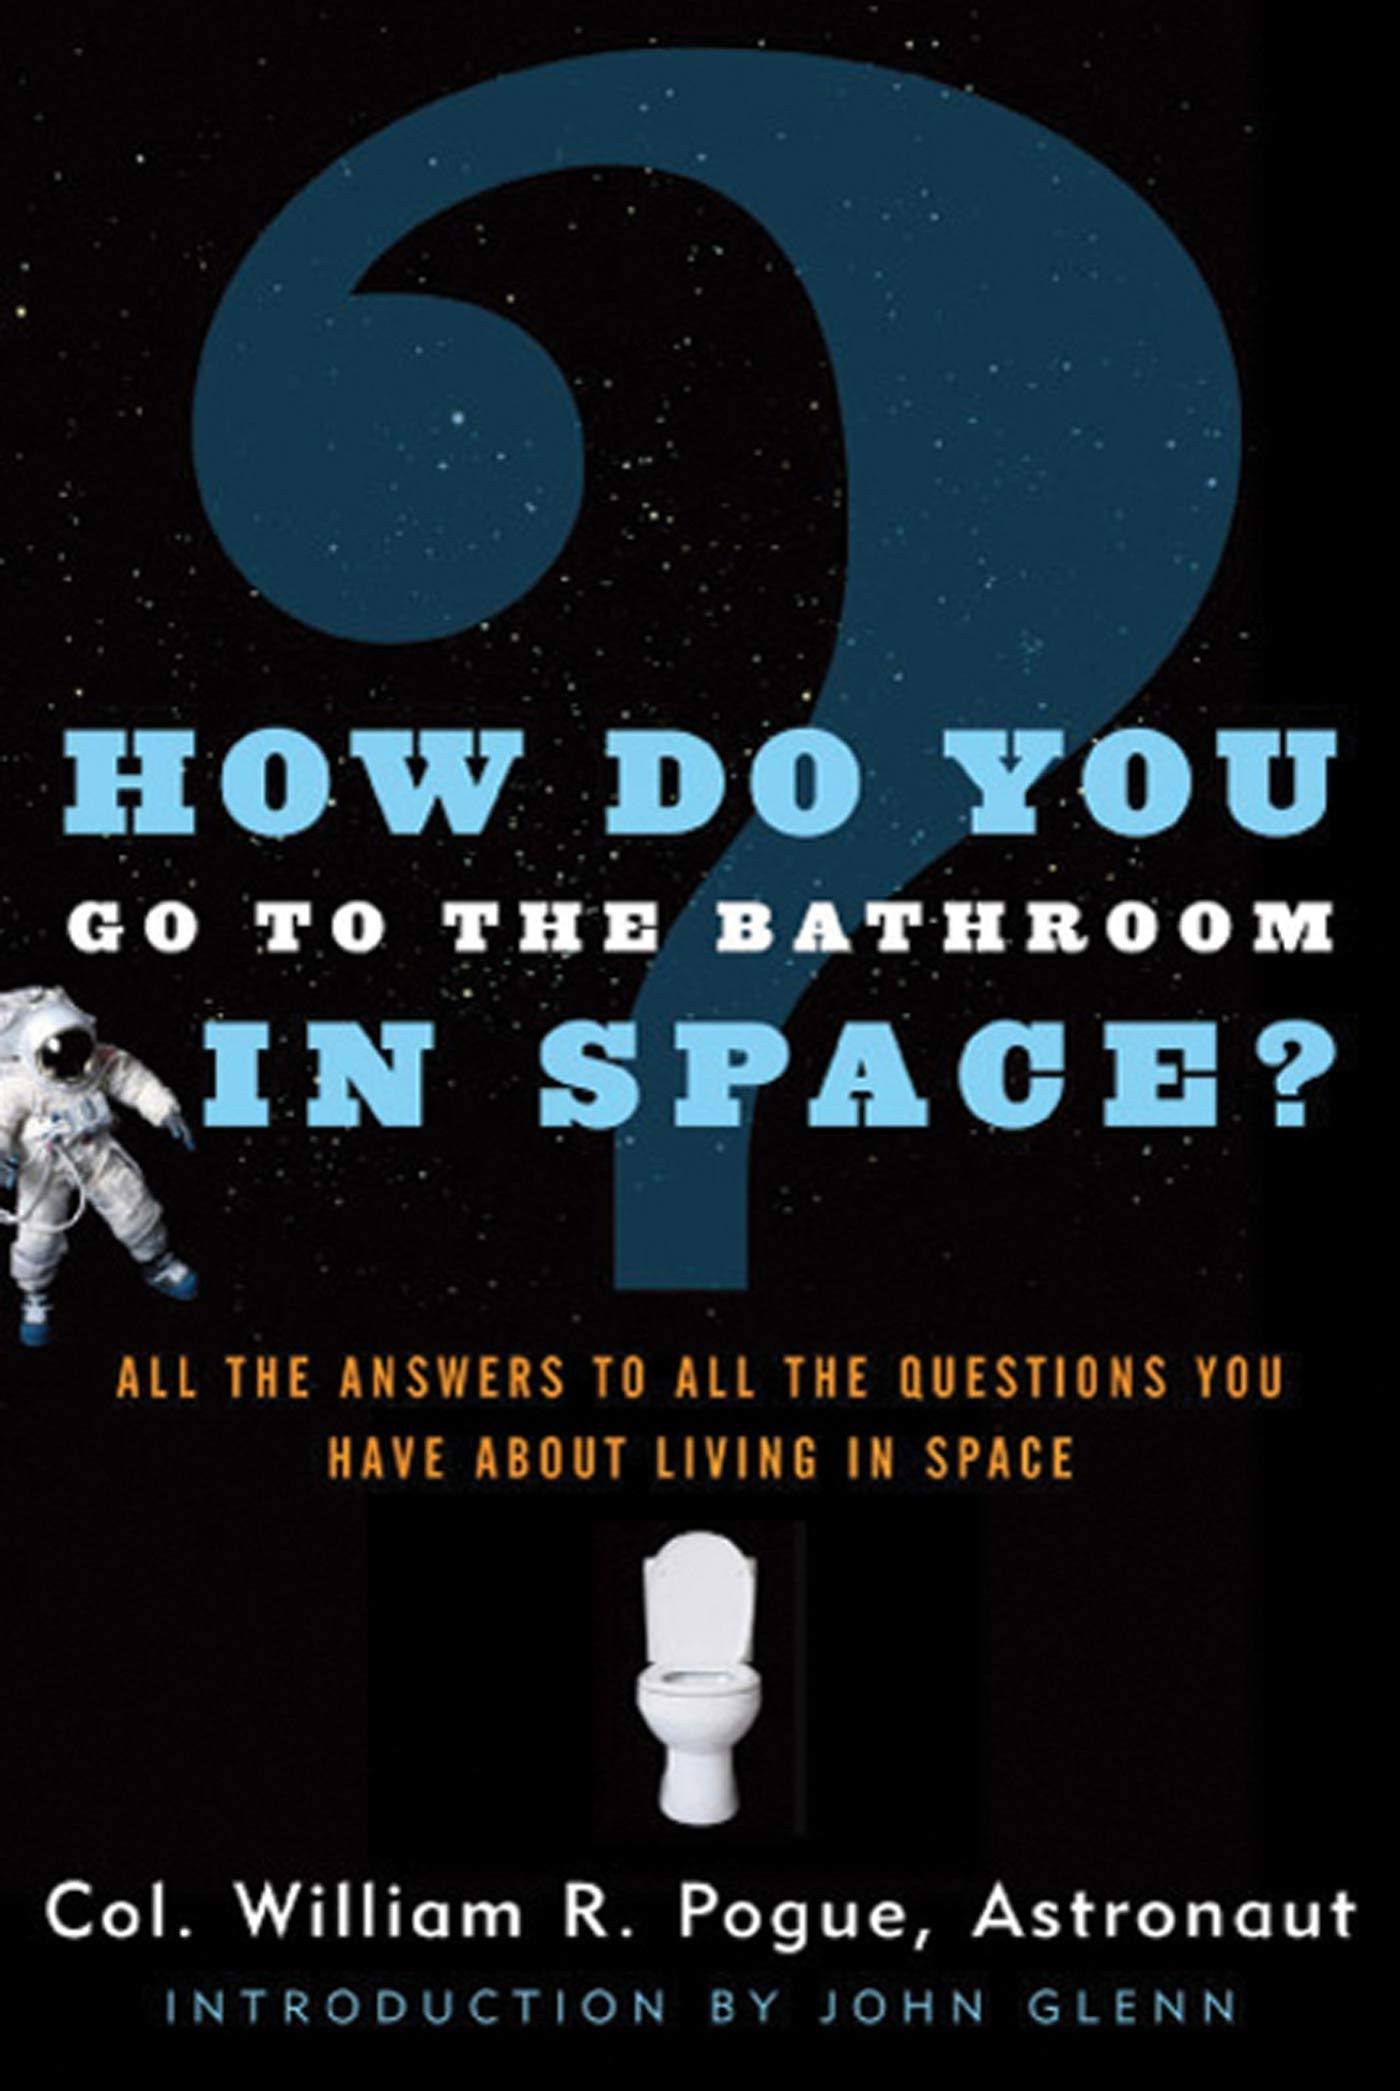 How Do You Go To The Bathroom In Space?: All the Answers to All the Questions You Have About Living in Space